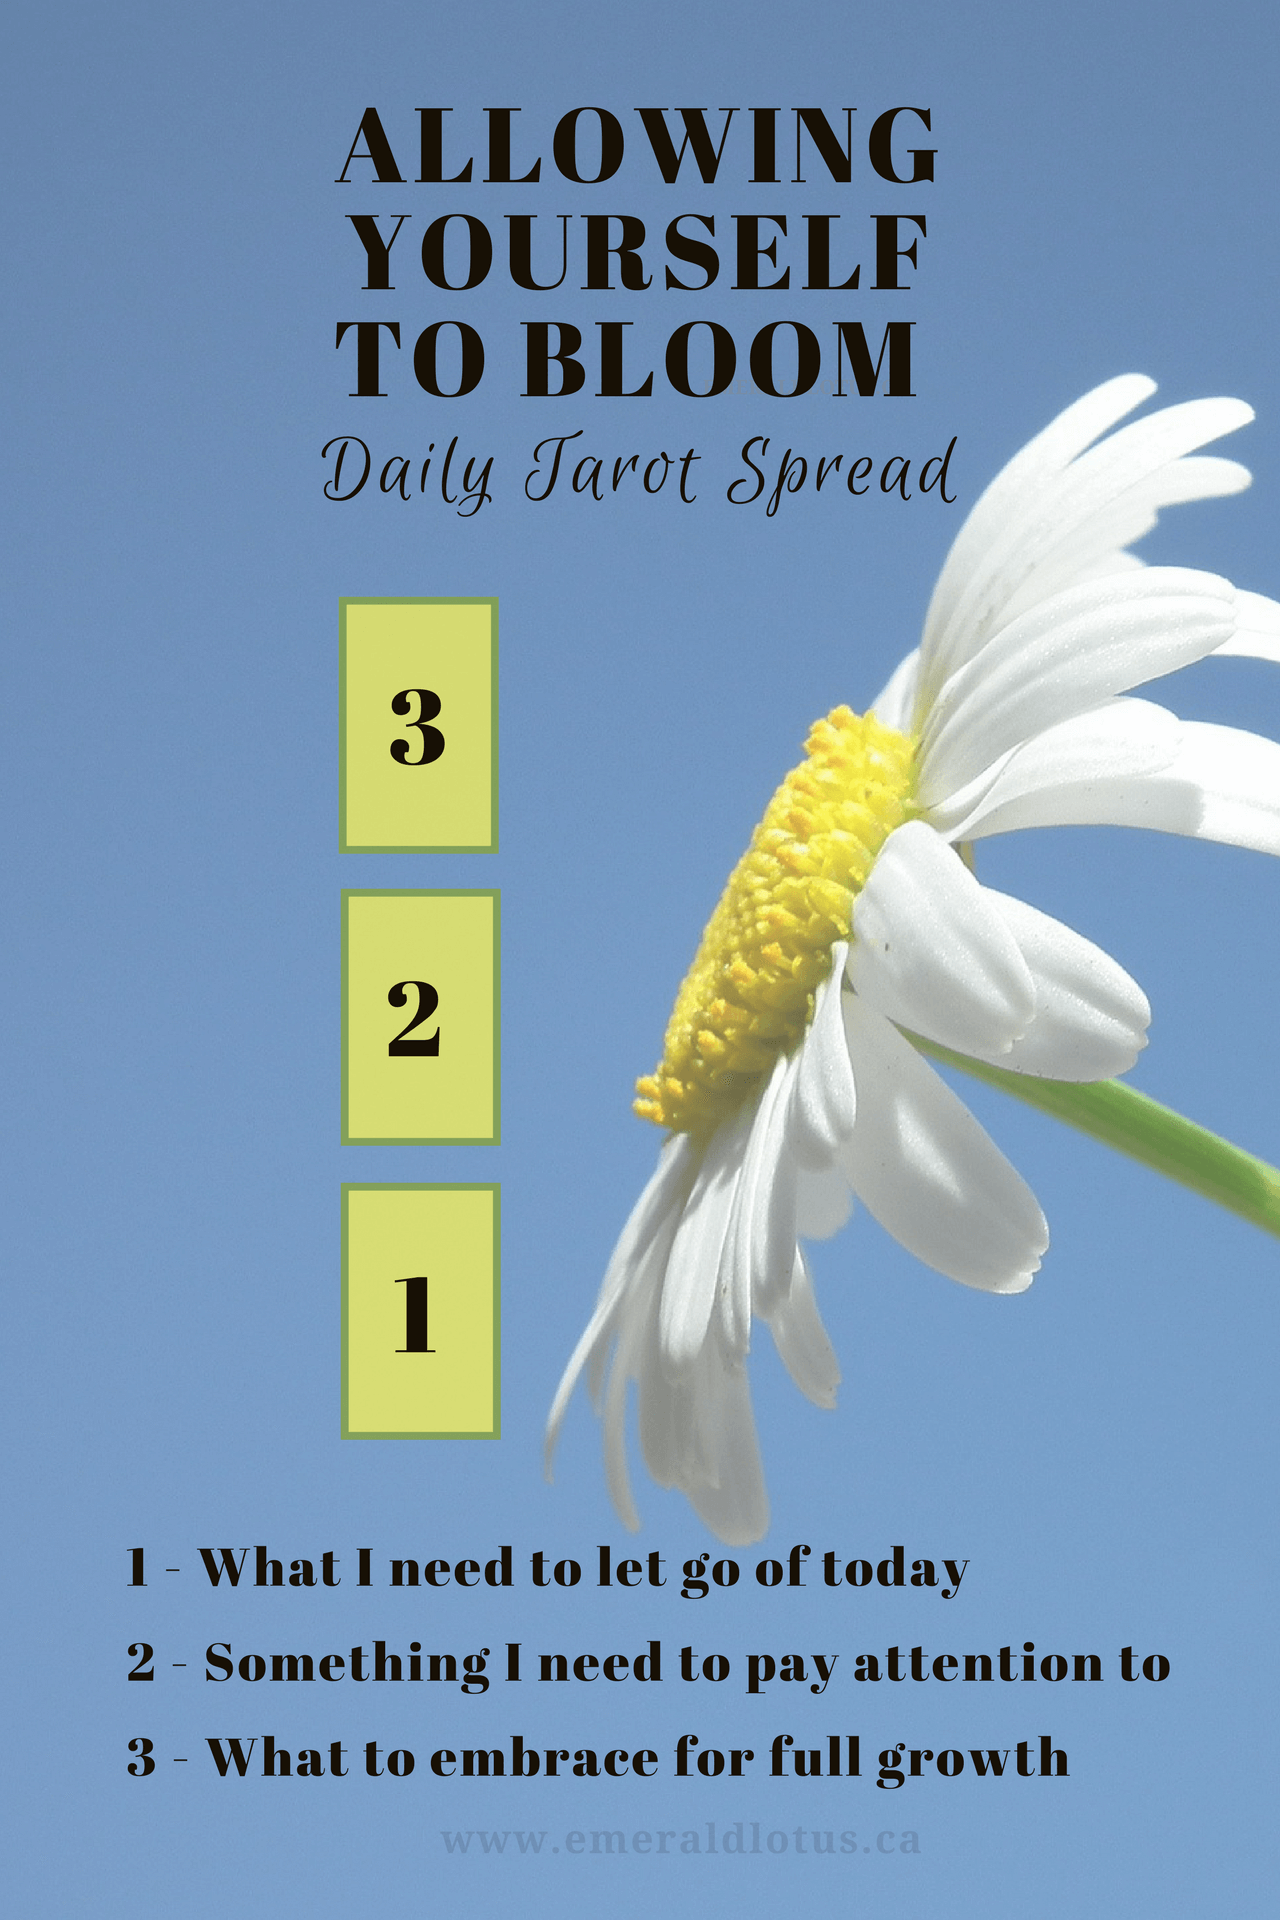 growth-bloom-daily-tarot-spread-1.png